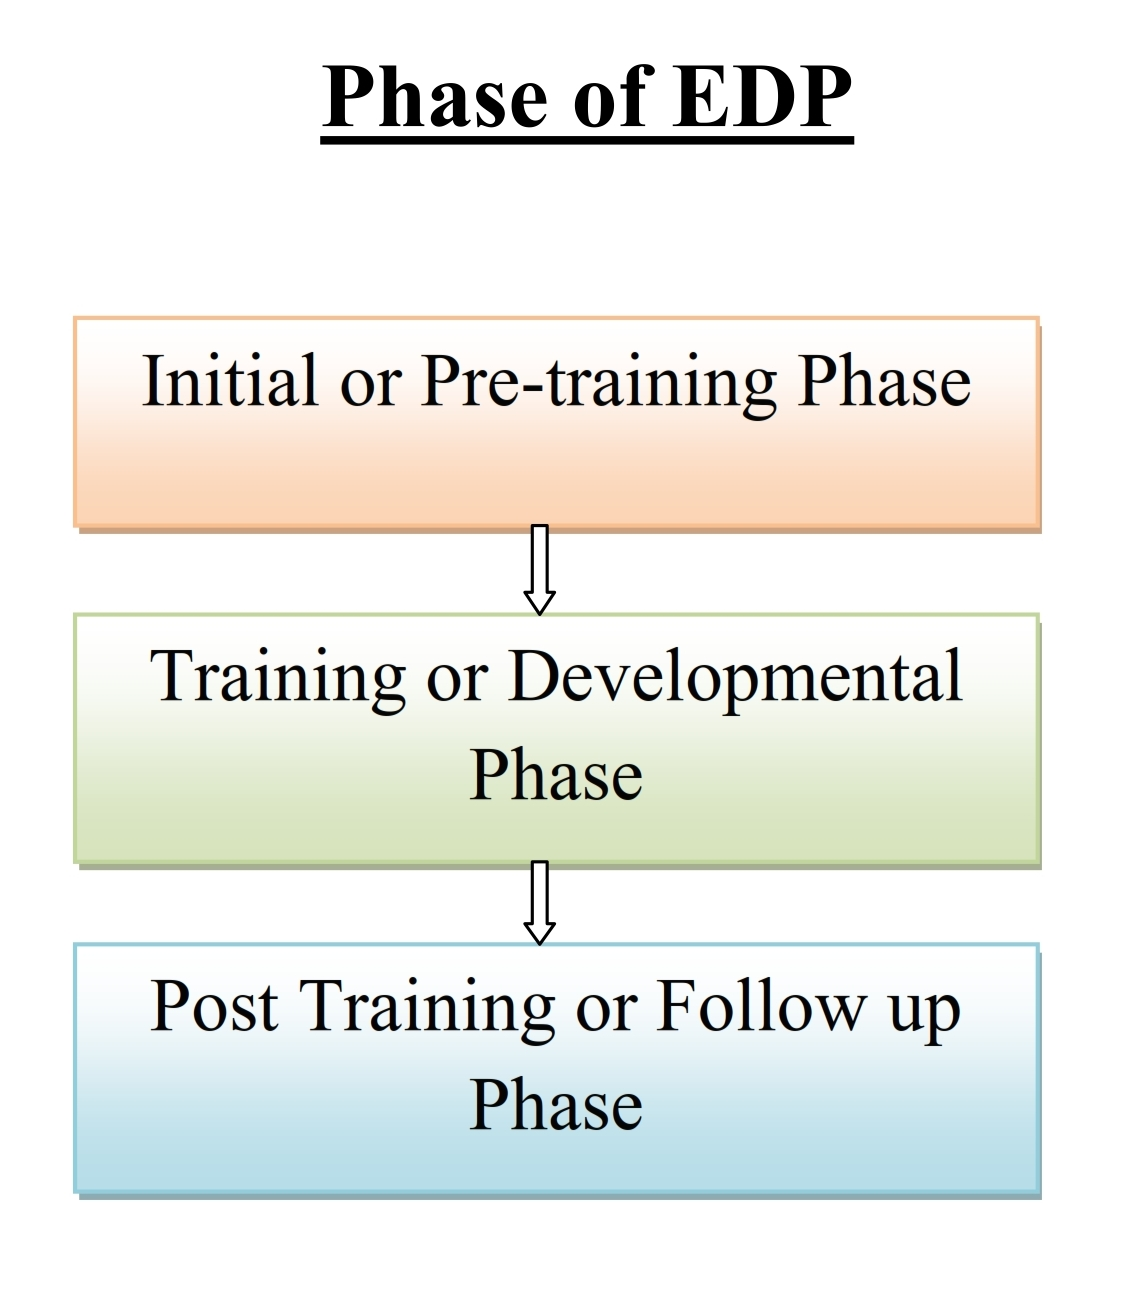 Simplynotes - Phases of EDP - Simplynotes